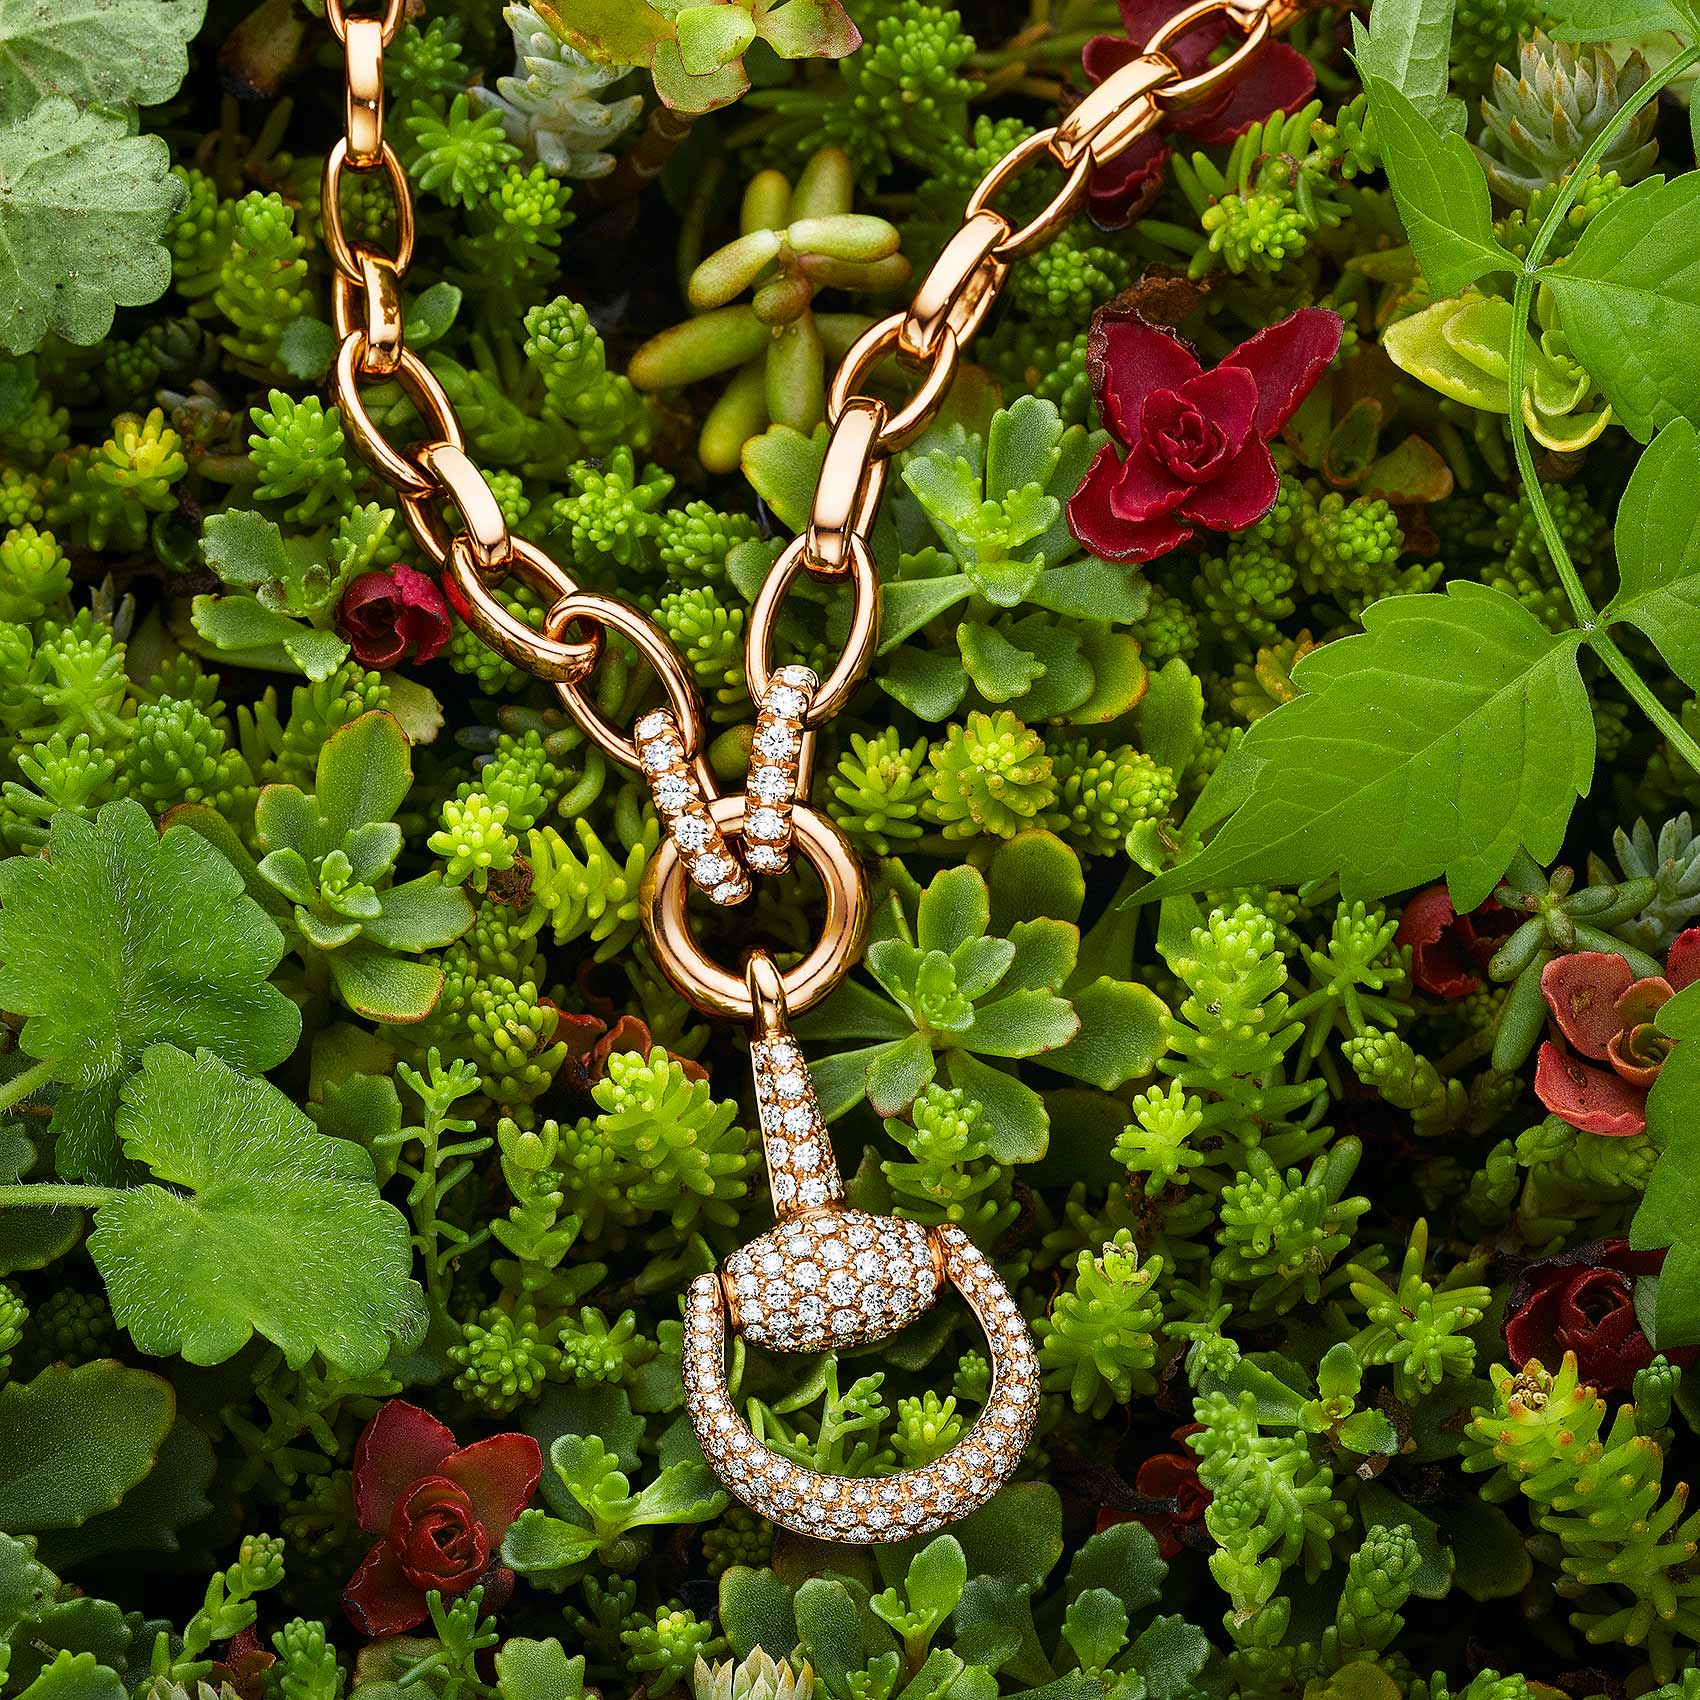 Pendant in Foliage